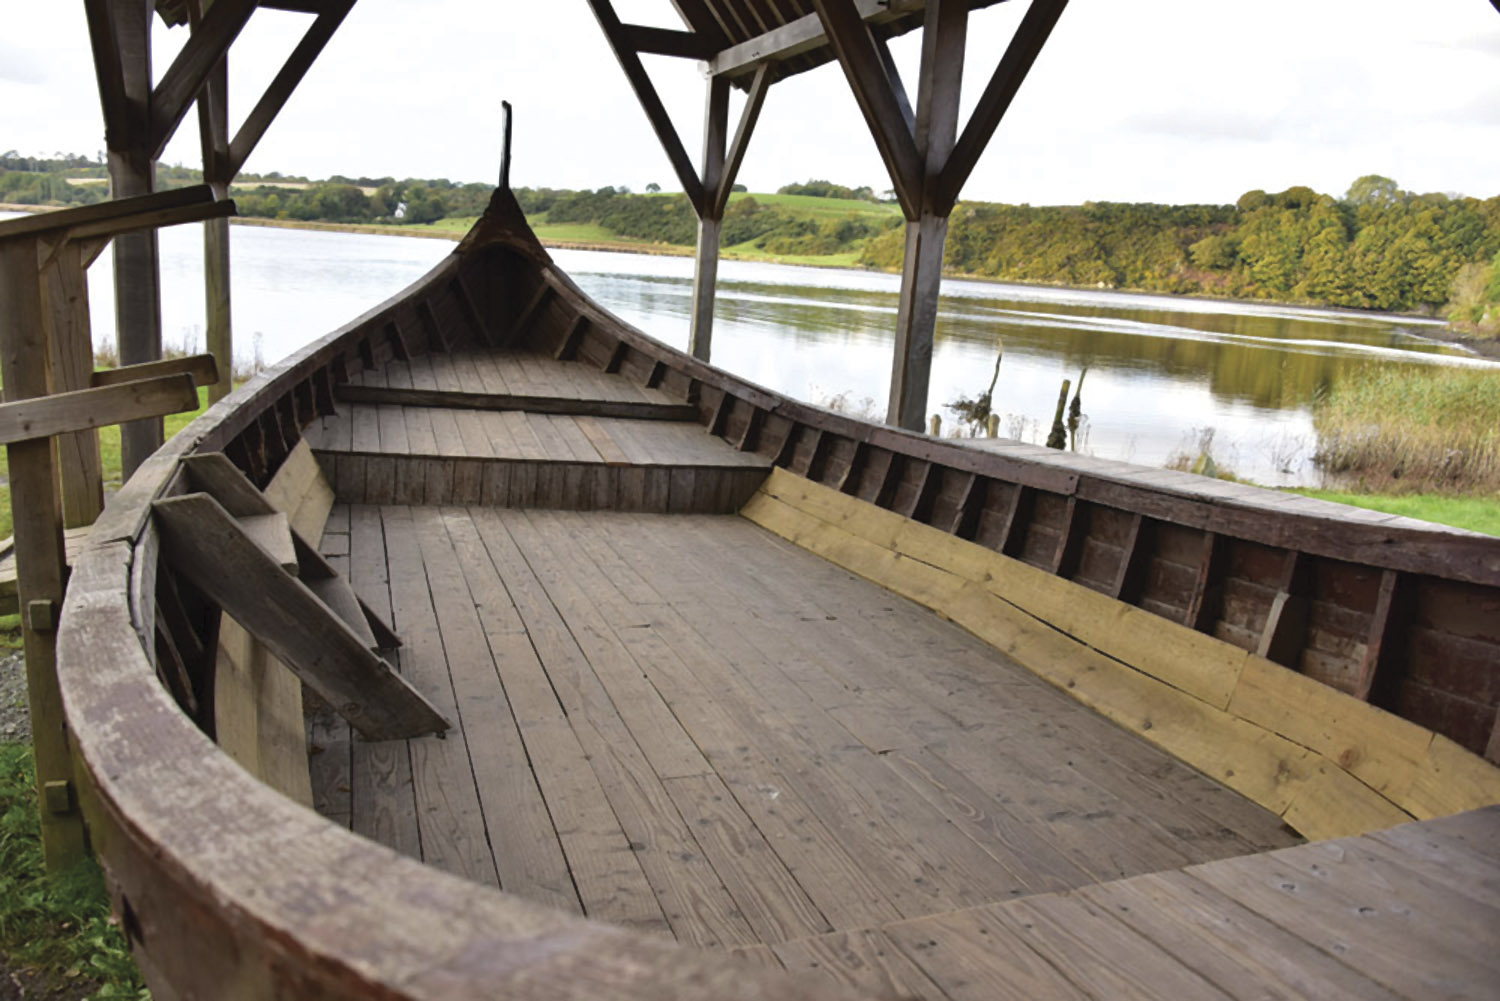 A Viking longboat in Wexford's Irish National Heritage Park.